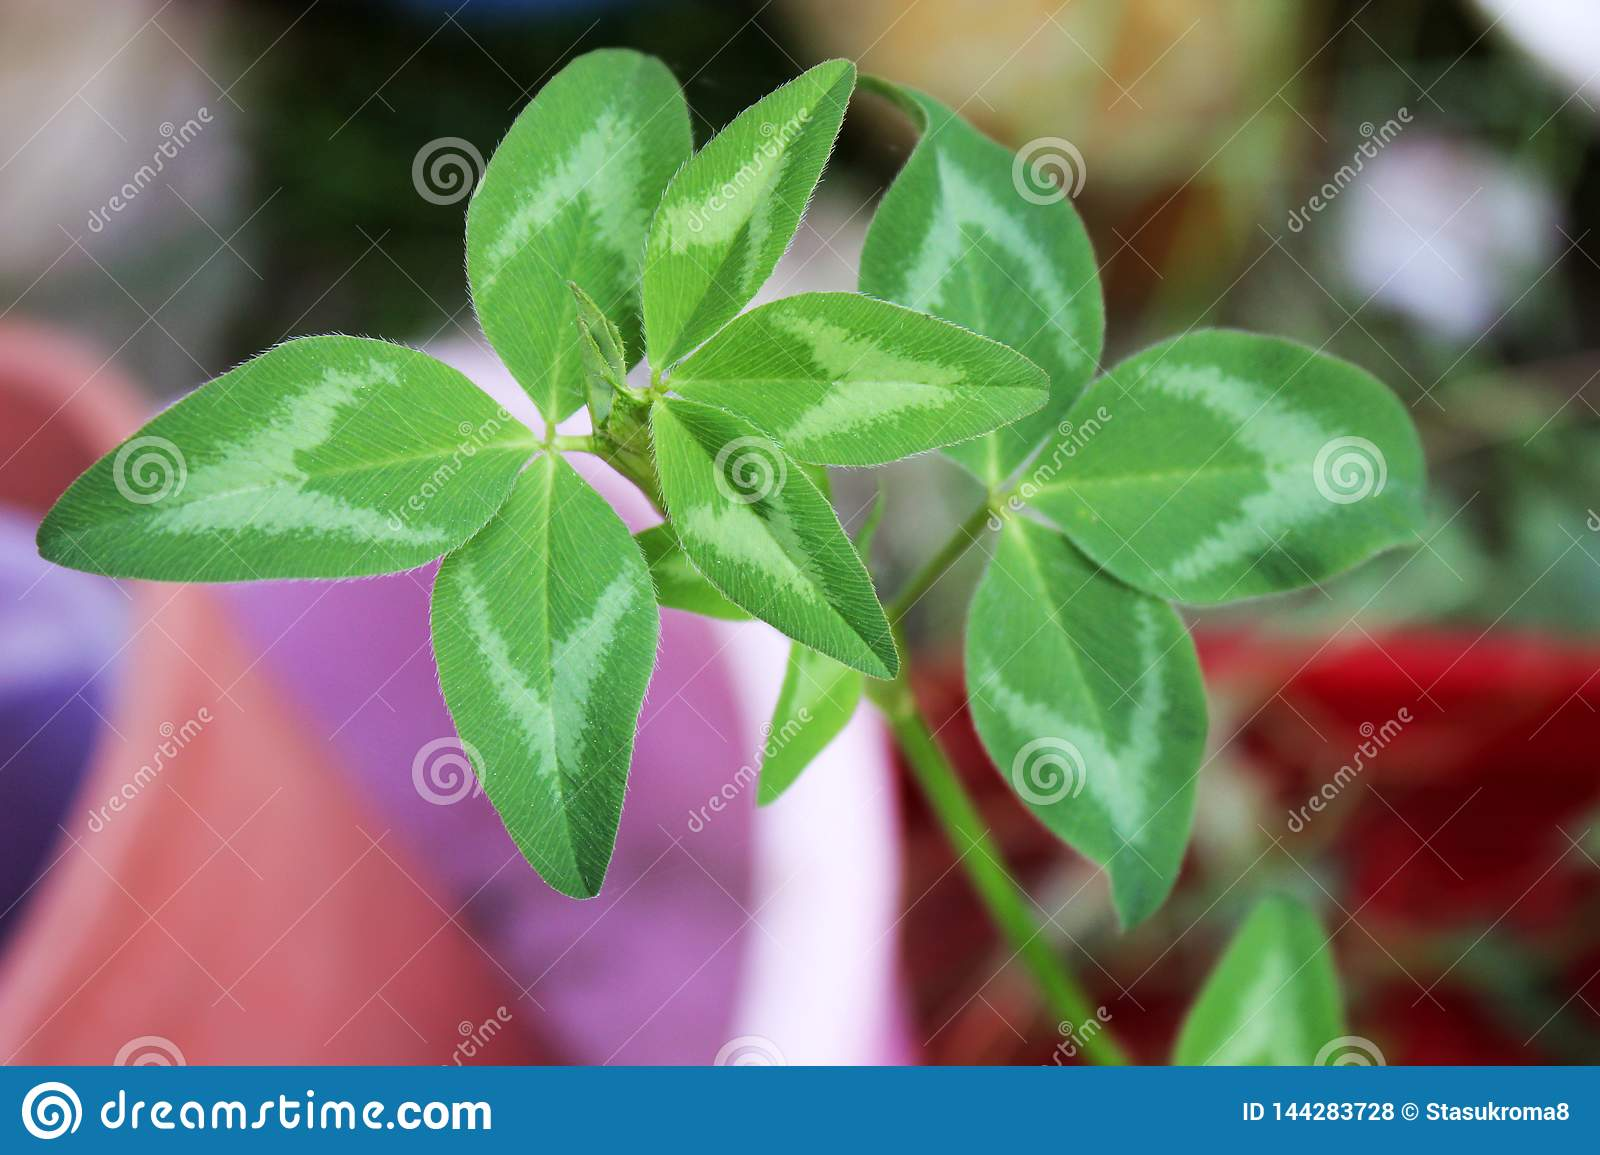 Clover leaf close up. Green plant